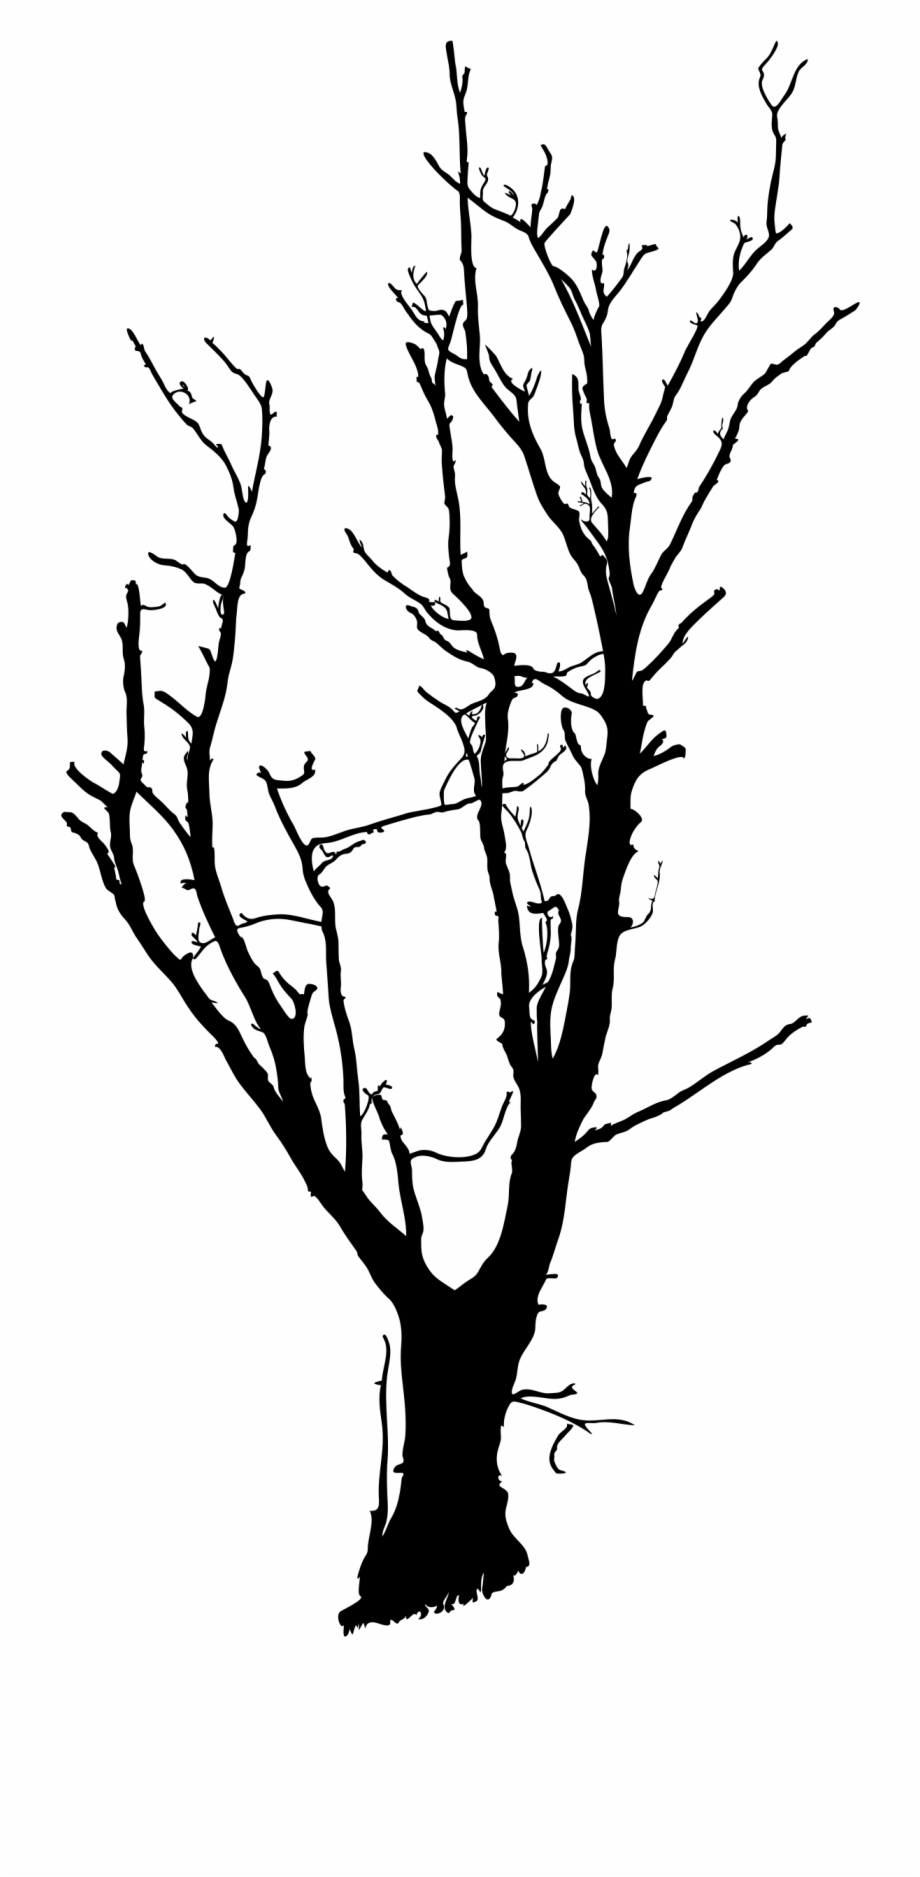 Deadtree clipart picture black and white download Drawing Trees Dead Tree - Stem Clipart Black And White, Transparent ... picture black and white download